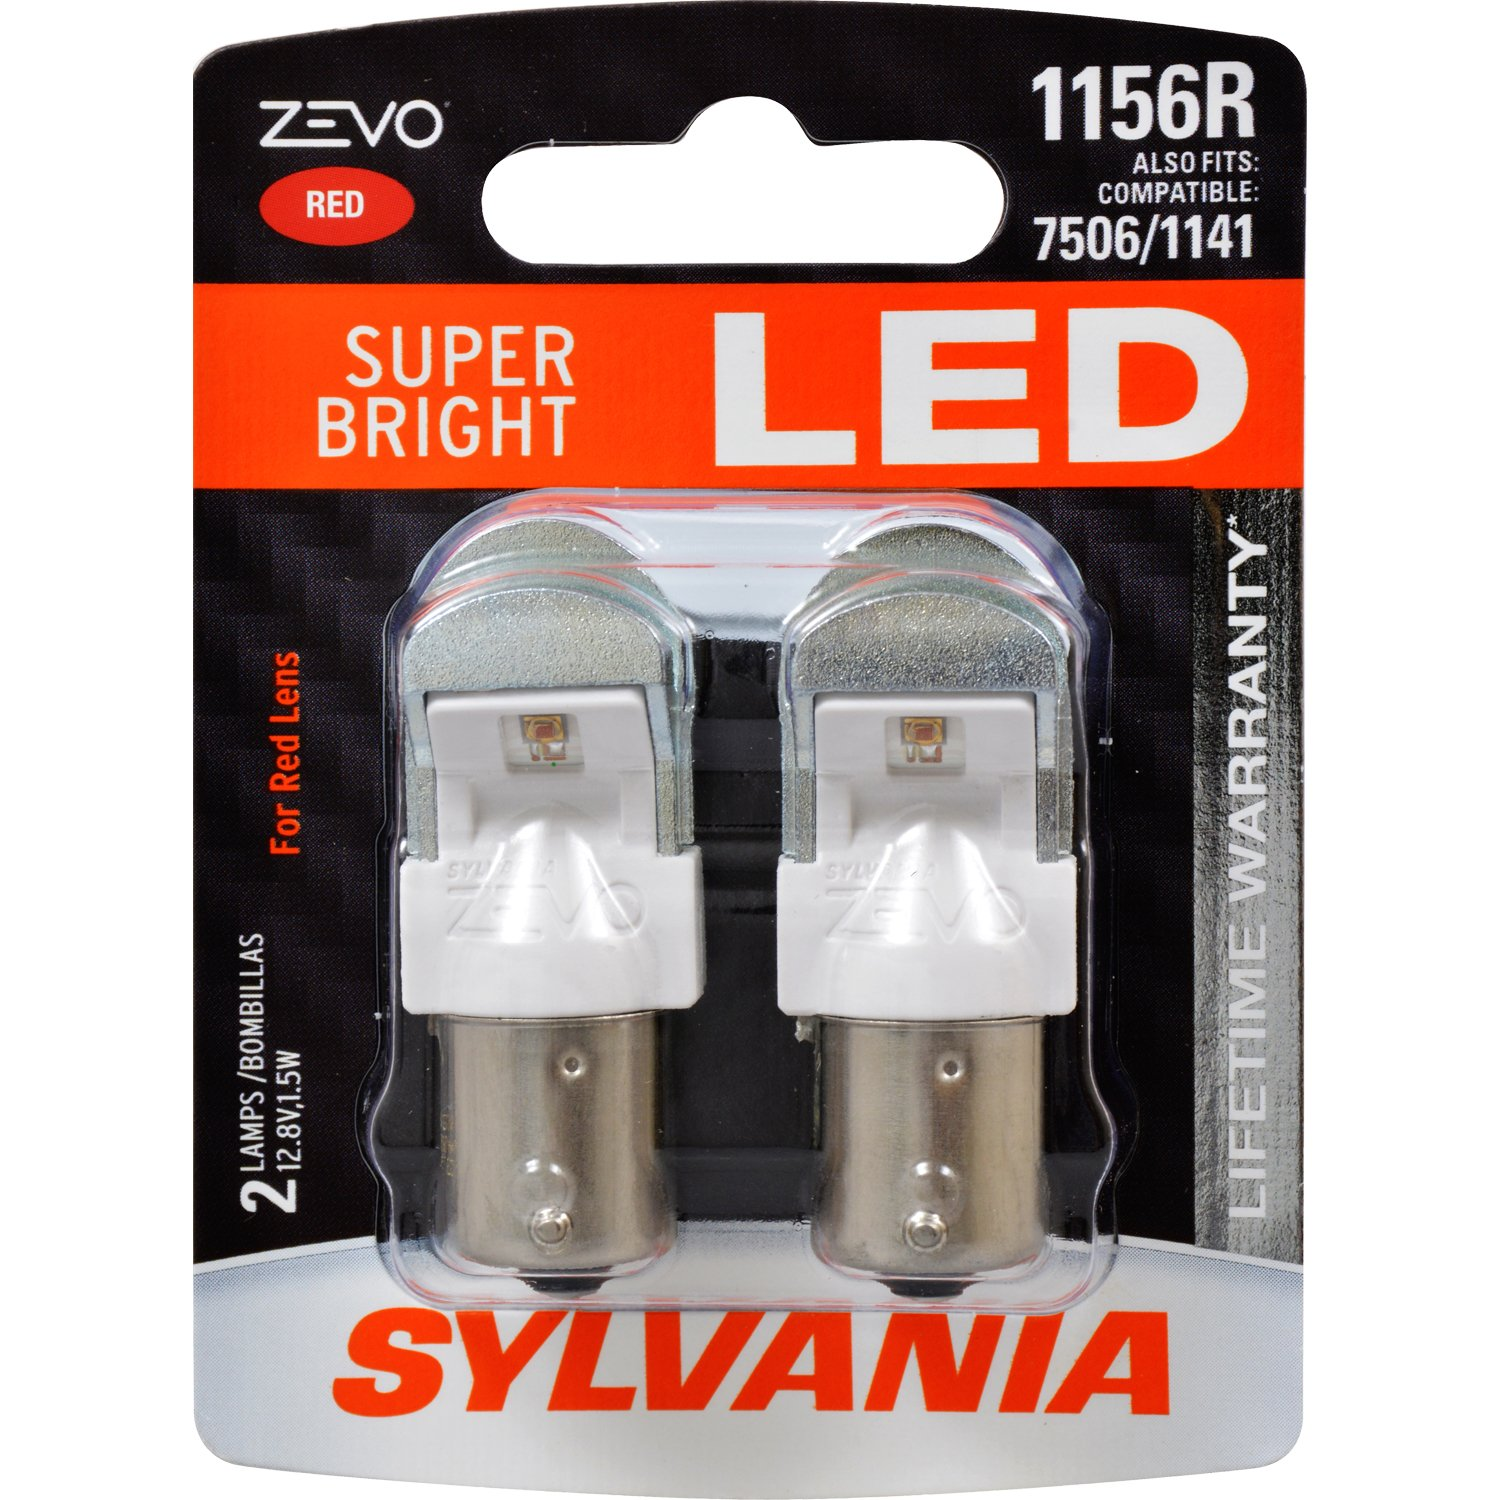 SYLVANIA - 1156 ZEVO LED Red Bulb - Bright LED Bulb, Ideal for Stop and Tail Lights (Contains 2 Bulbs) 1156RLED.BP2